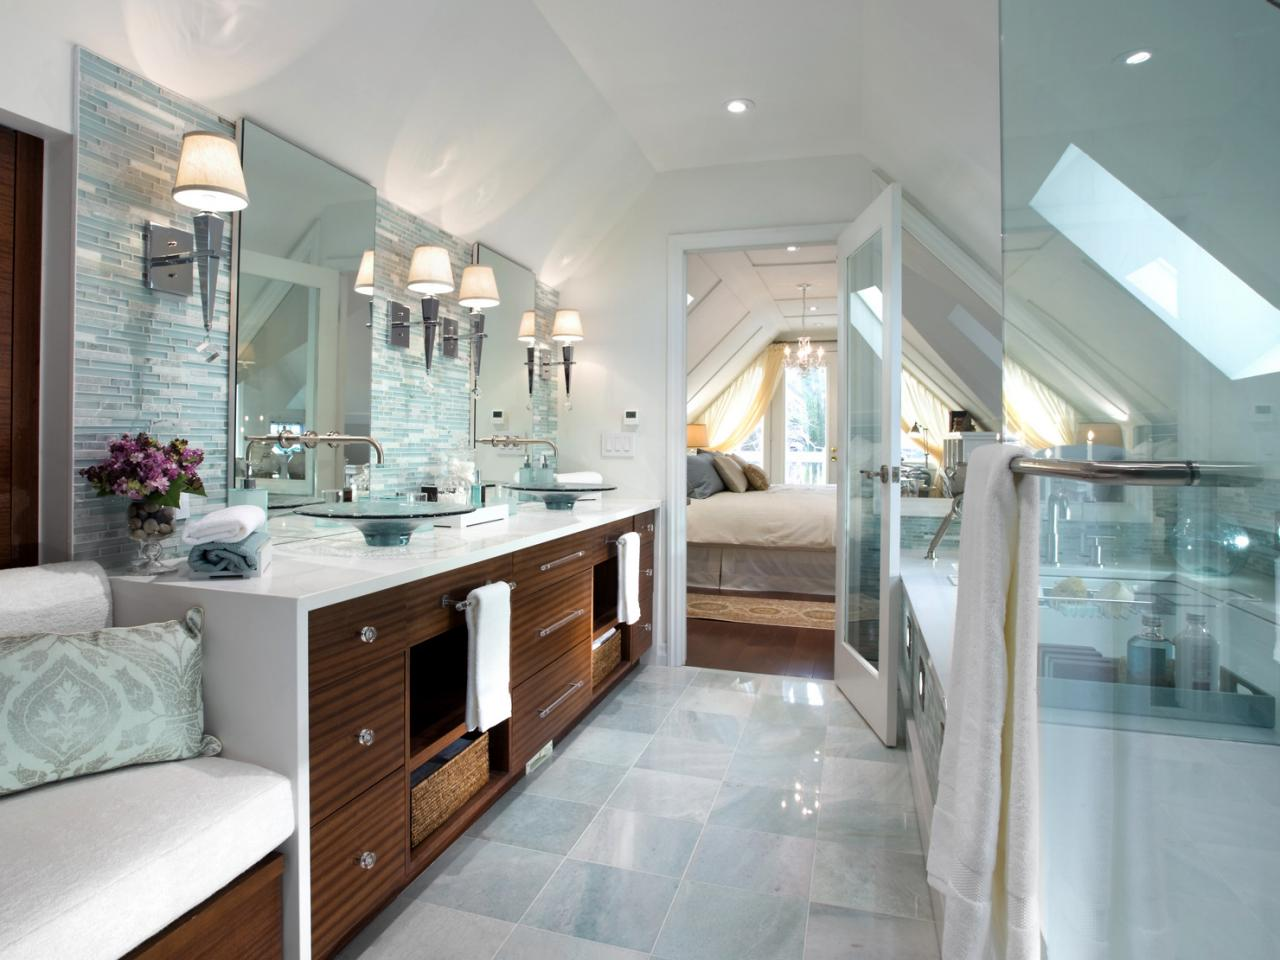 5 Stunning Bathrooms By Candice Olsen